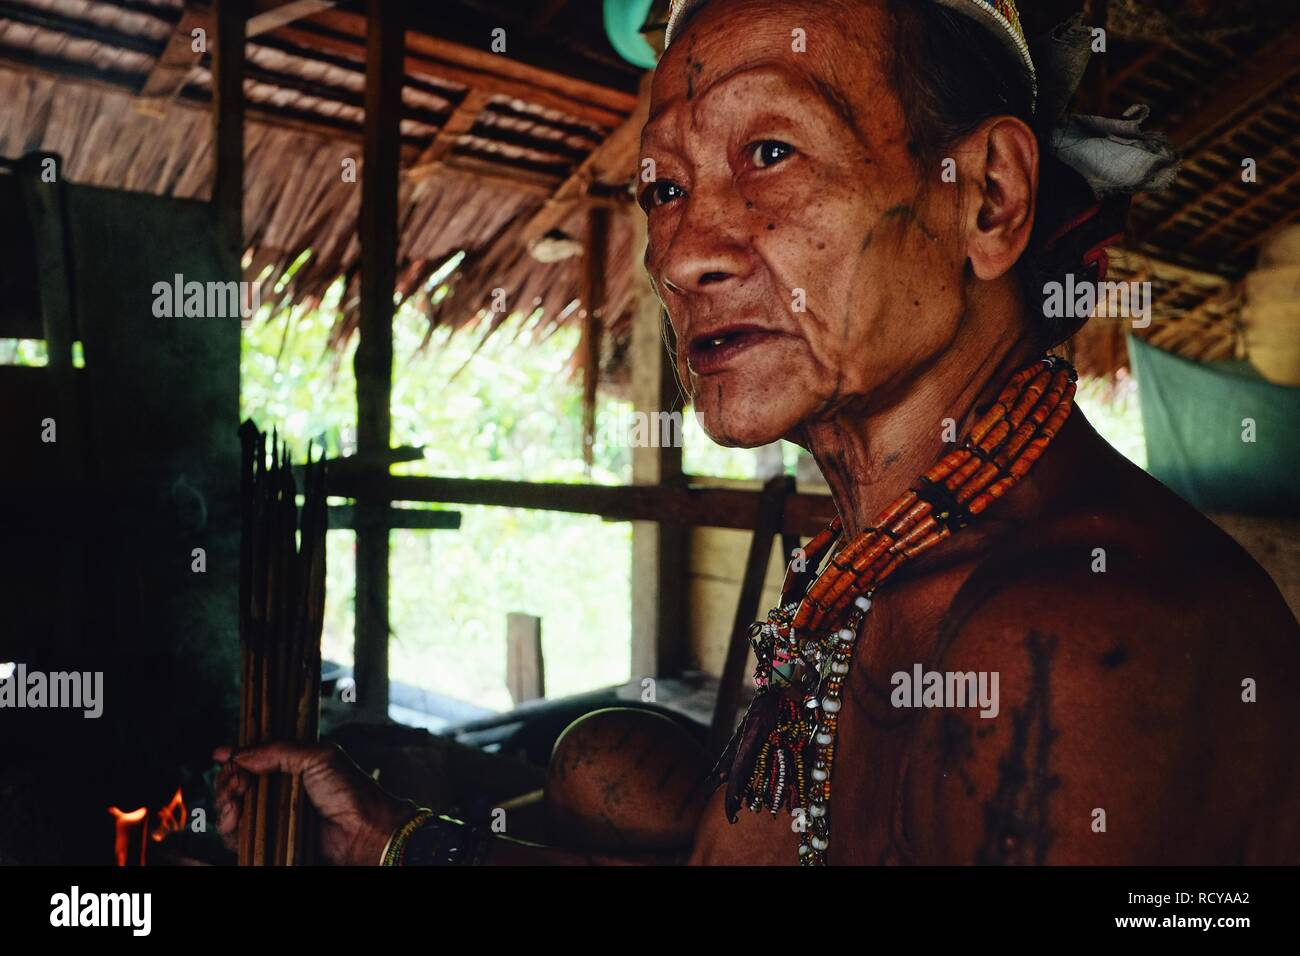 Muara Siberut, Mentawai Islands / Indonesia - Aug 15 2017: Tribal elder Toikot drying poisoned arrows over the fire at his rainforest home - Stock Image